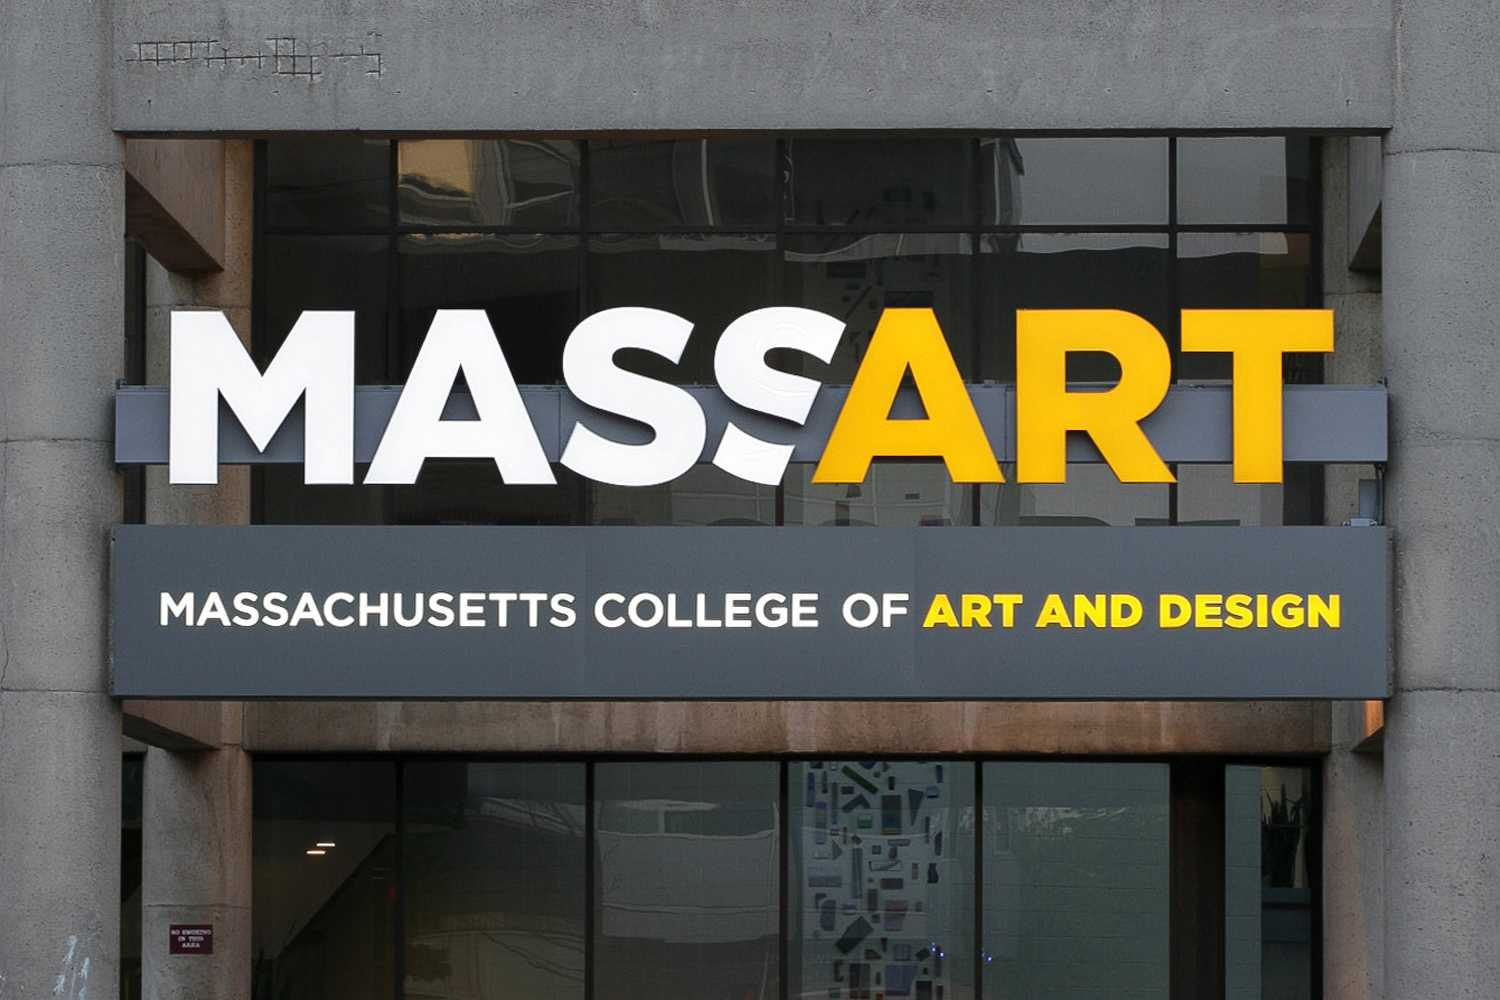 The Massachusetts College of Art and Design. (Image via Wikimedia Commons)